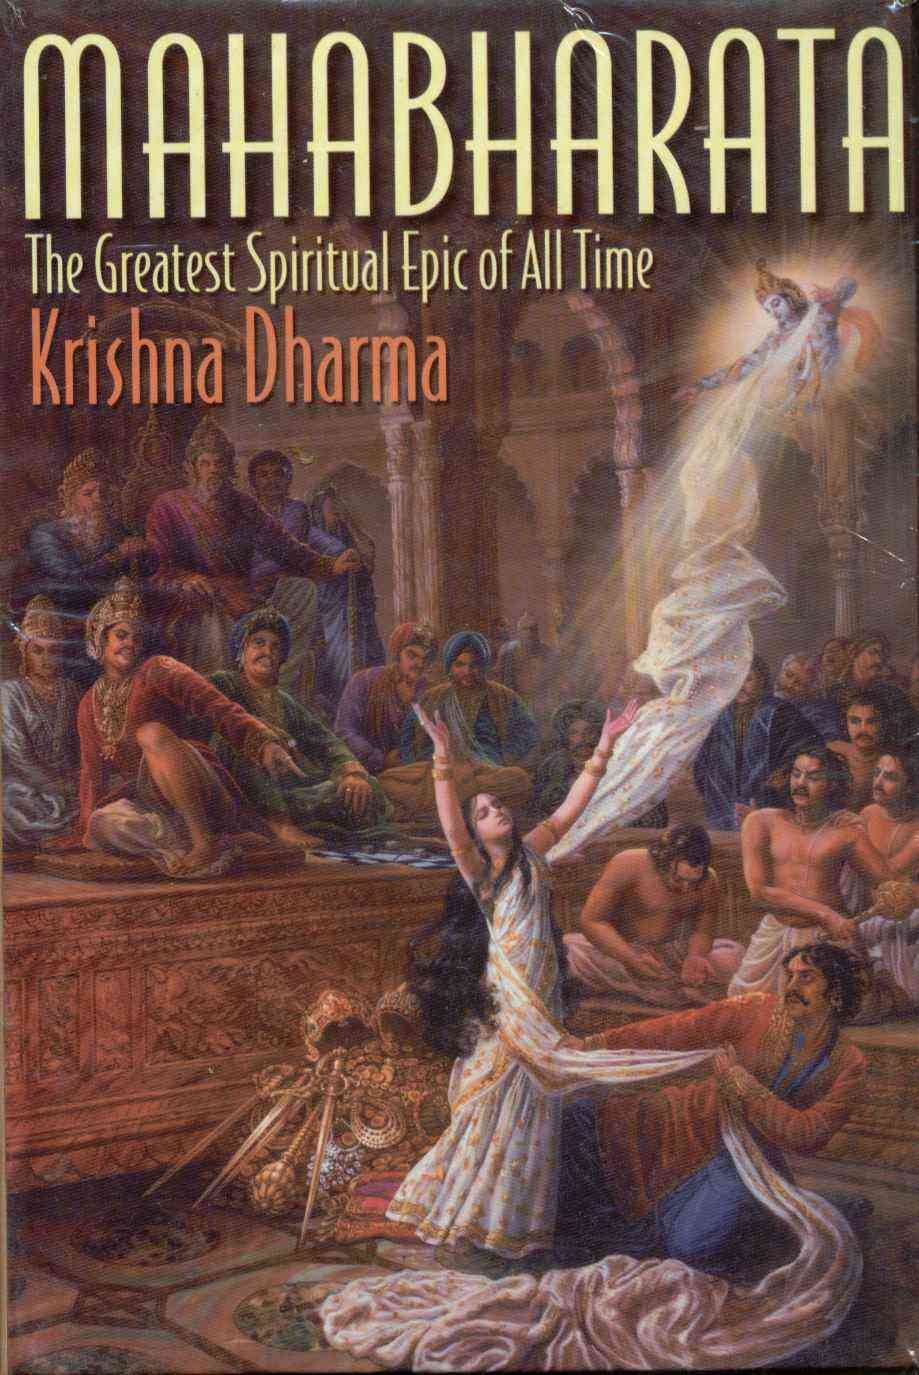 Mahabharata: The Greatest Spiritual Epic of All Time (Hardcover)